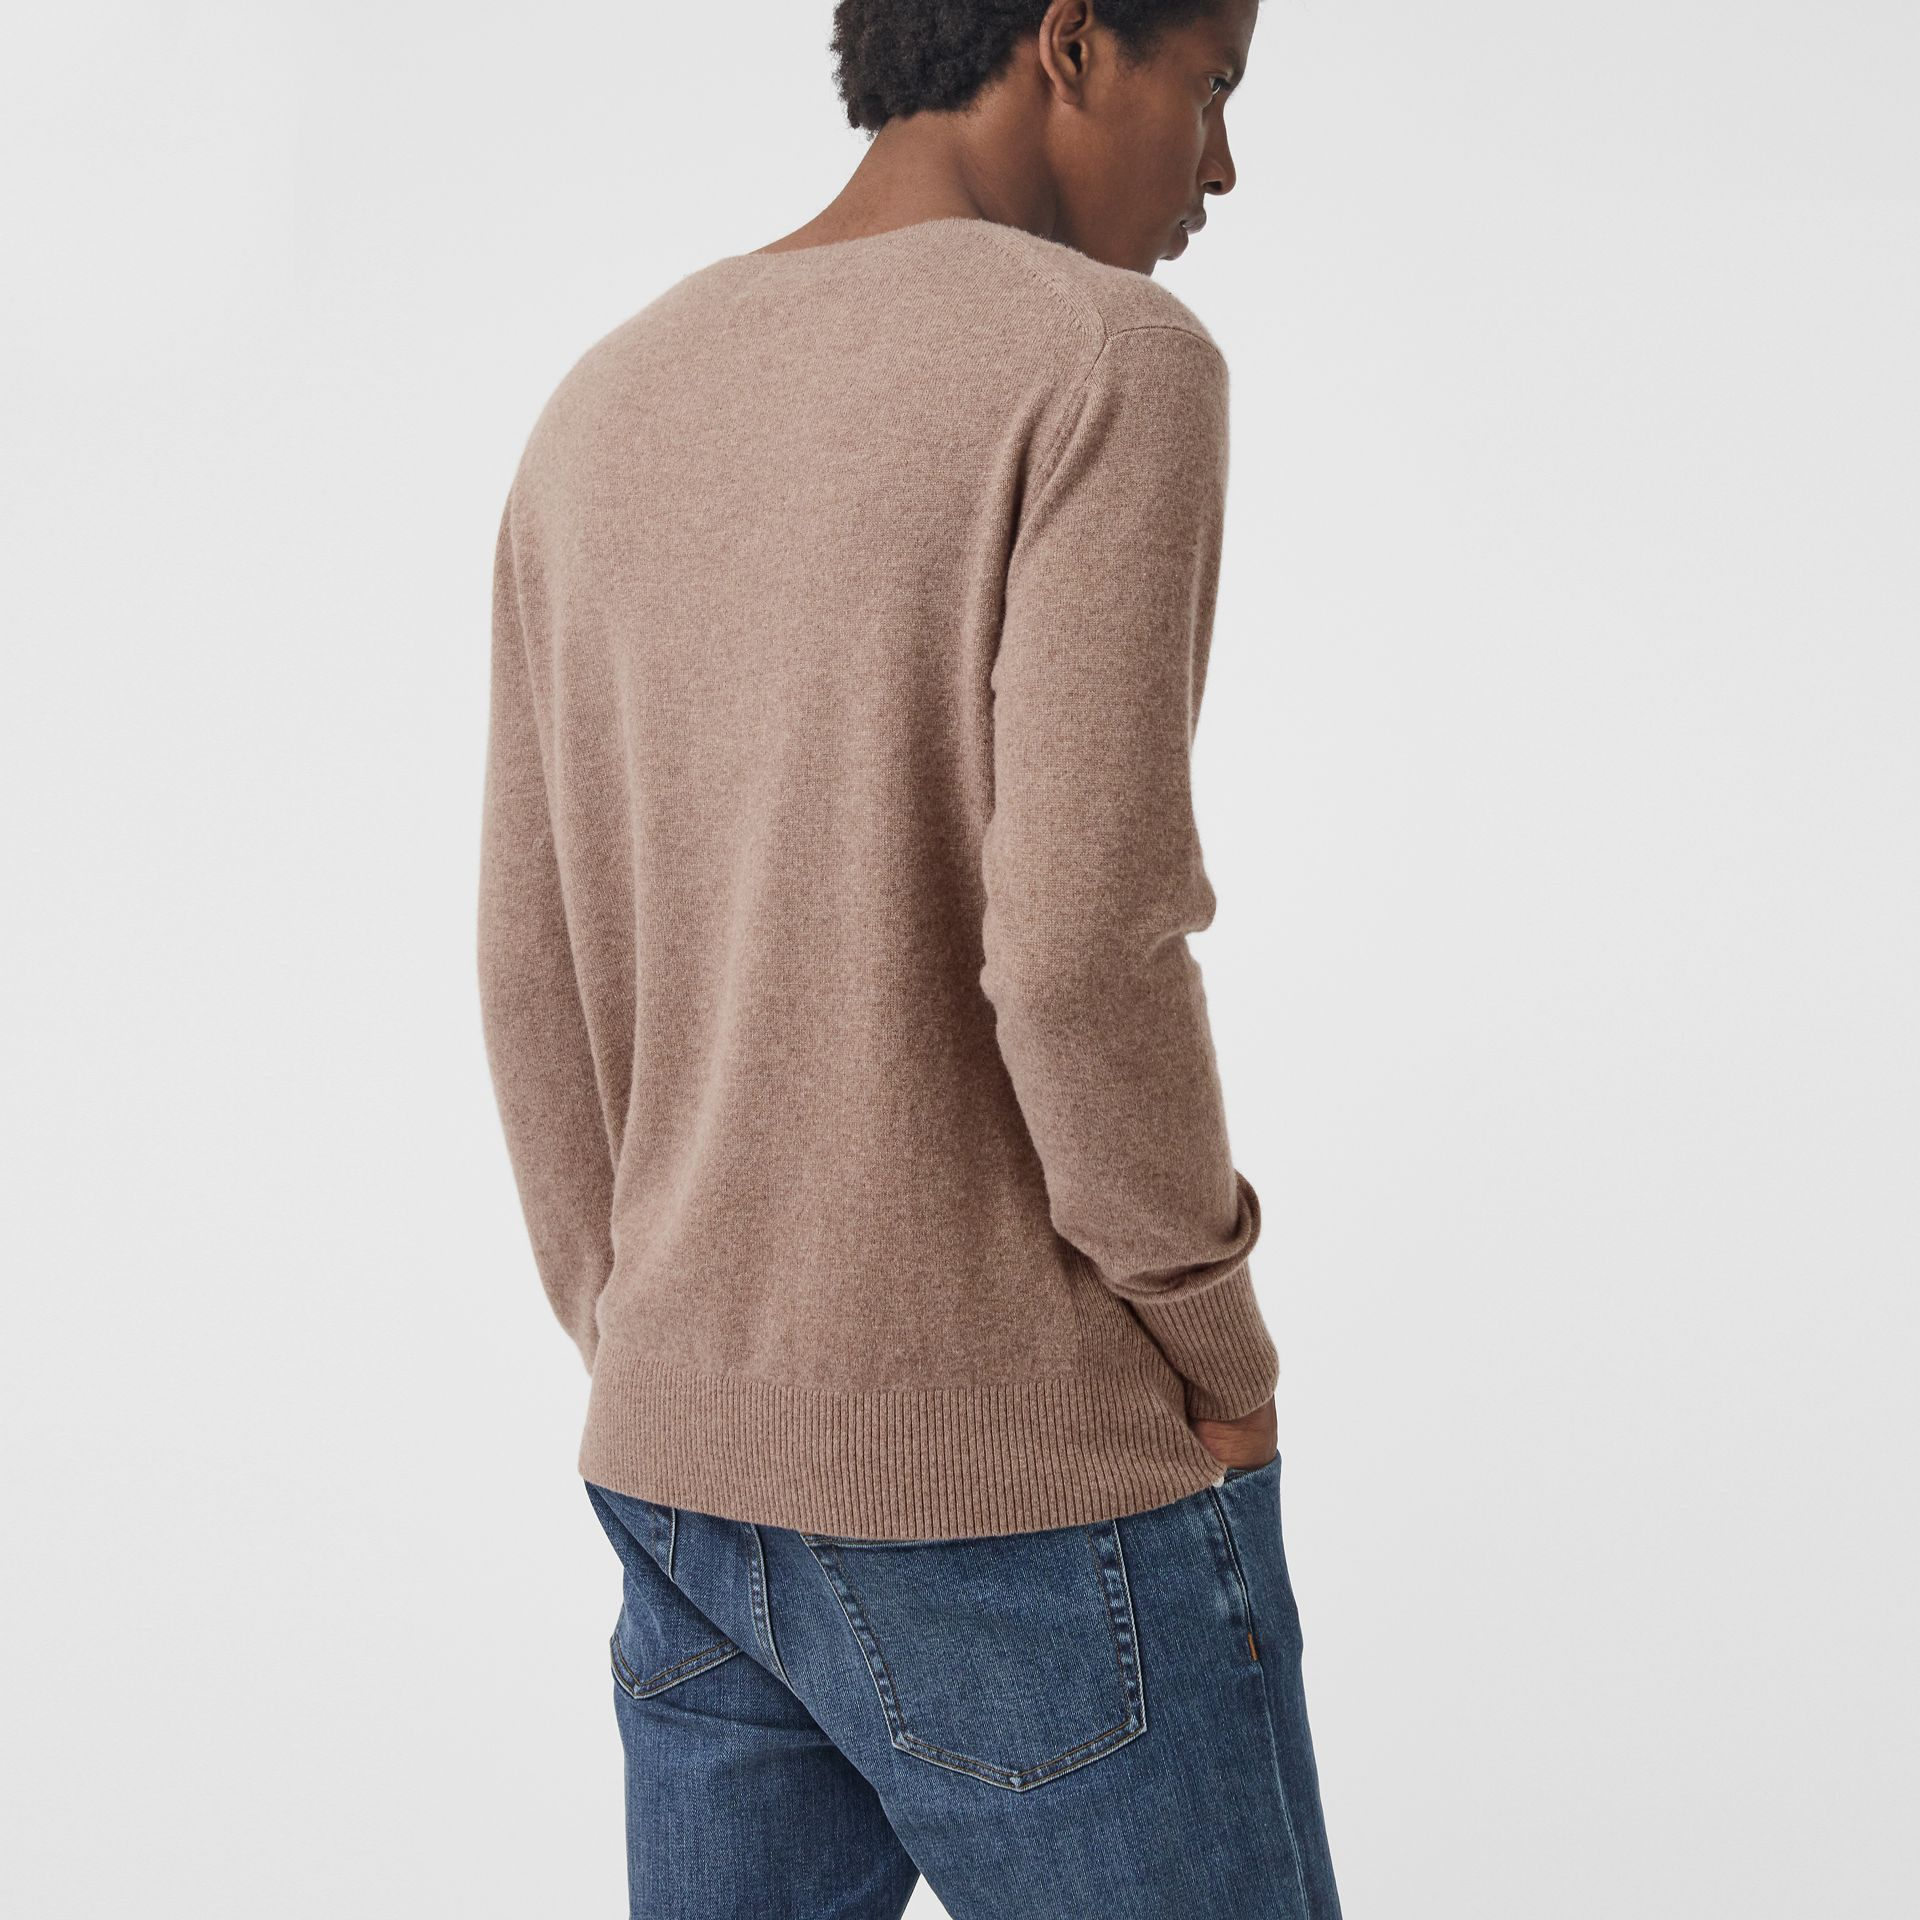 Embroidered Archive Logo Cashmere Sweater in Camel Melange - Men | Burberry Canada - gallery image 2